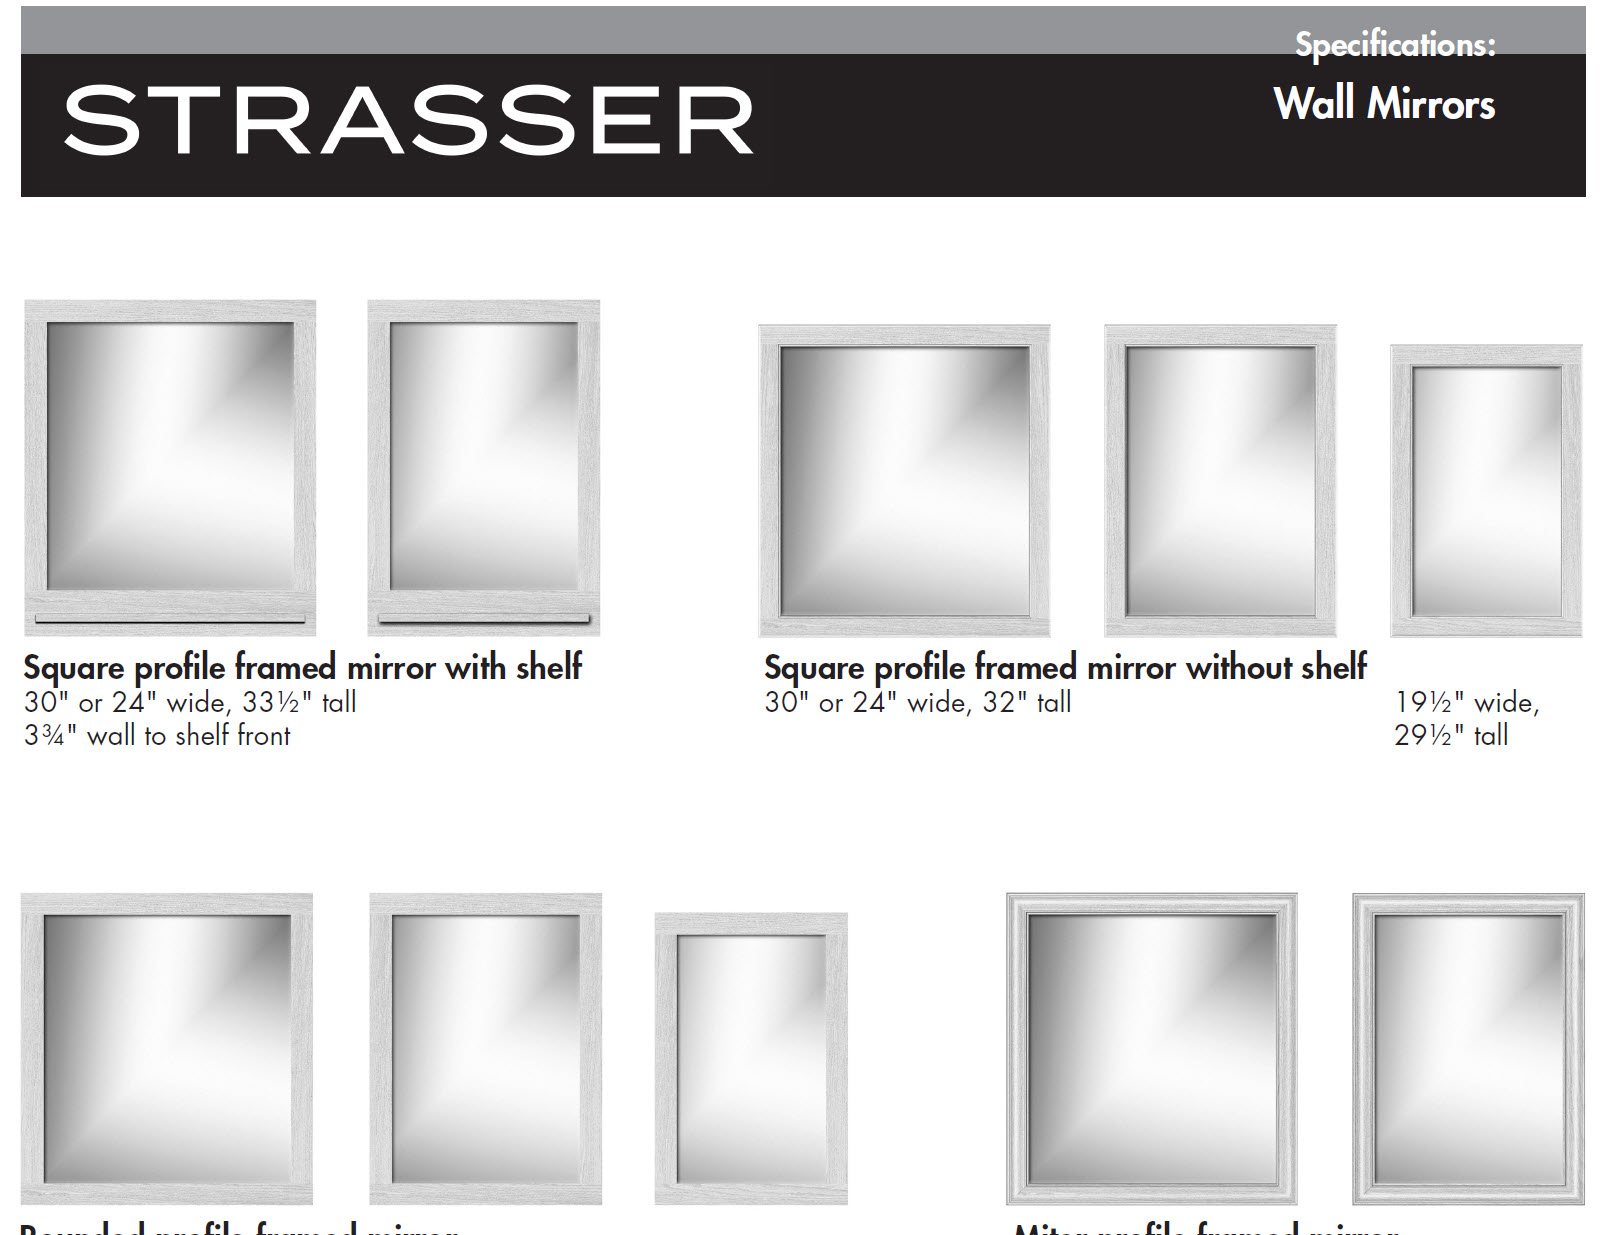 Specifications for Framed Wall Mirrors